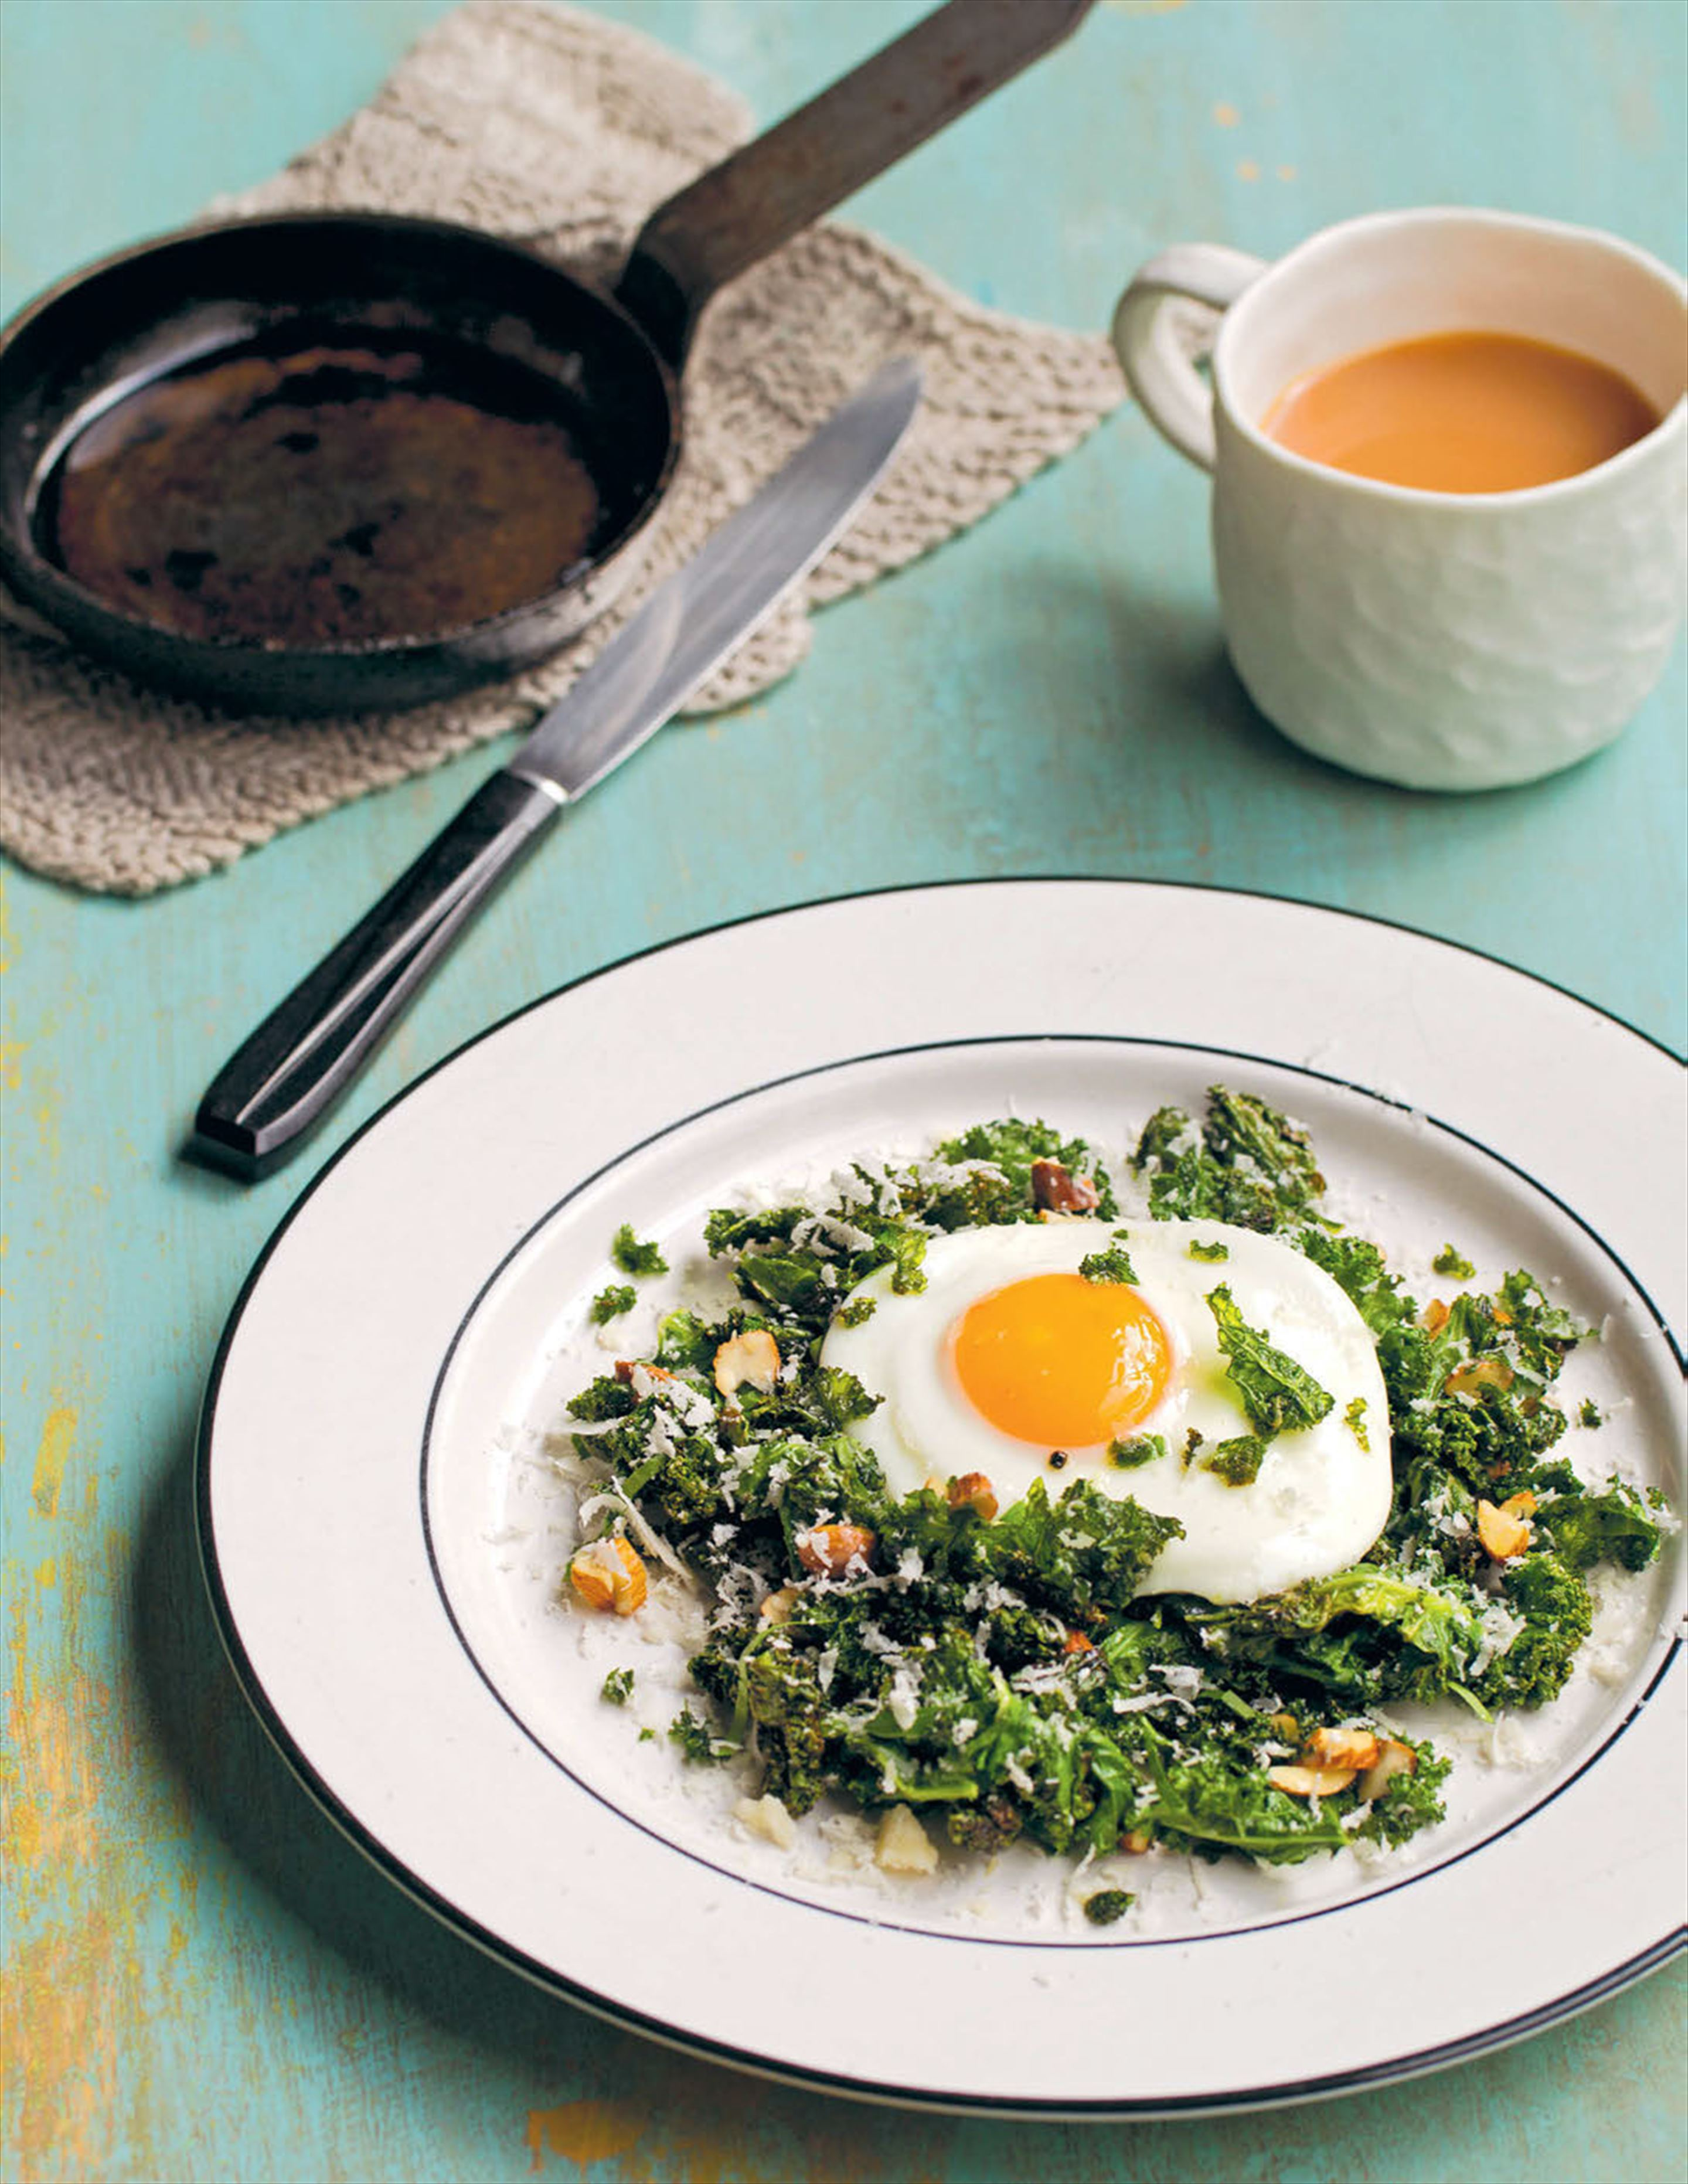 Salad of kale, cheddar and fried egg